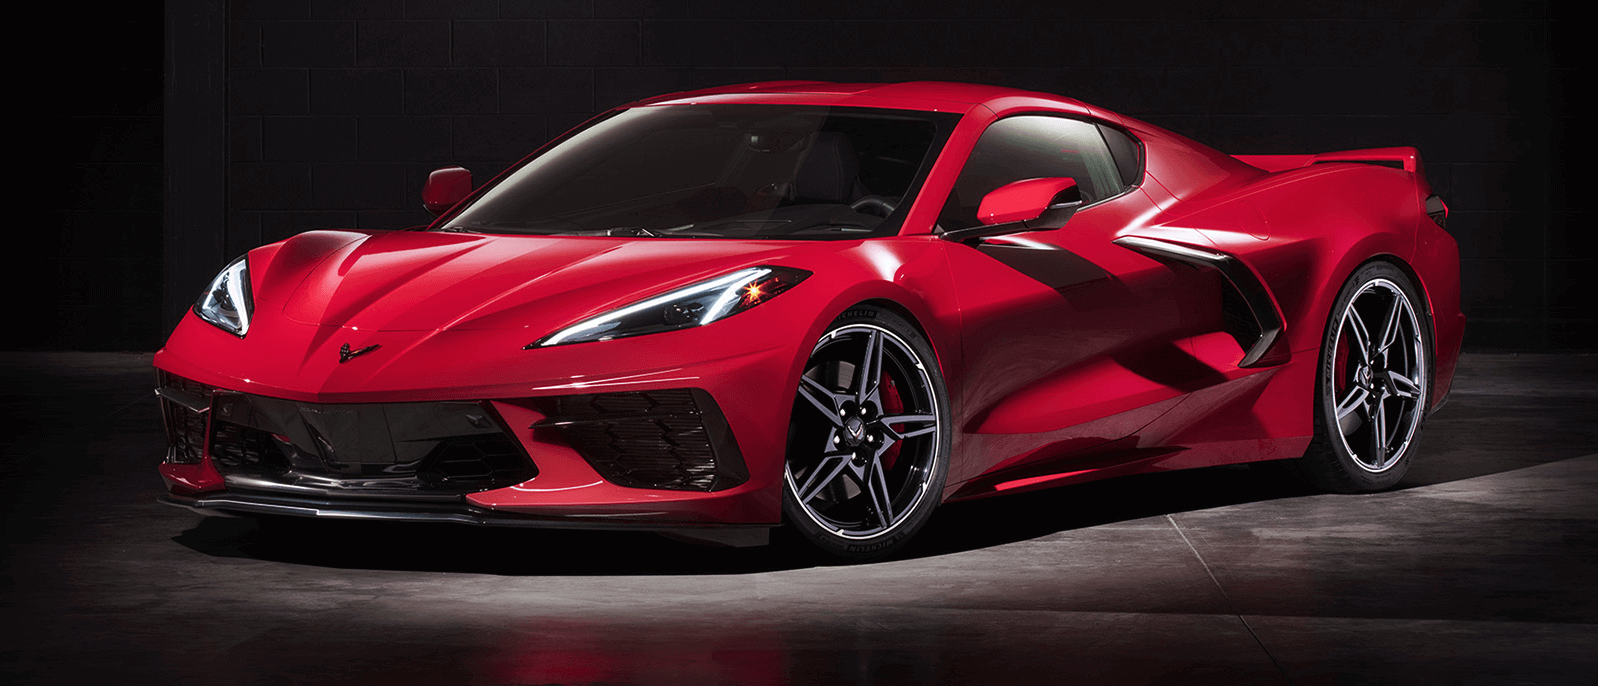 2020 Corvette at Martin Chevrolet